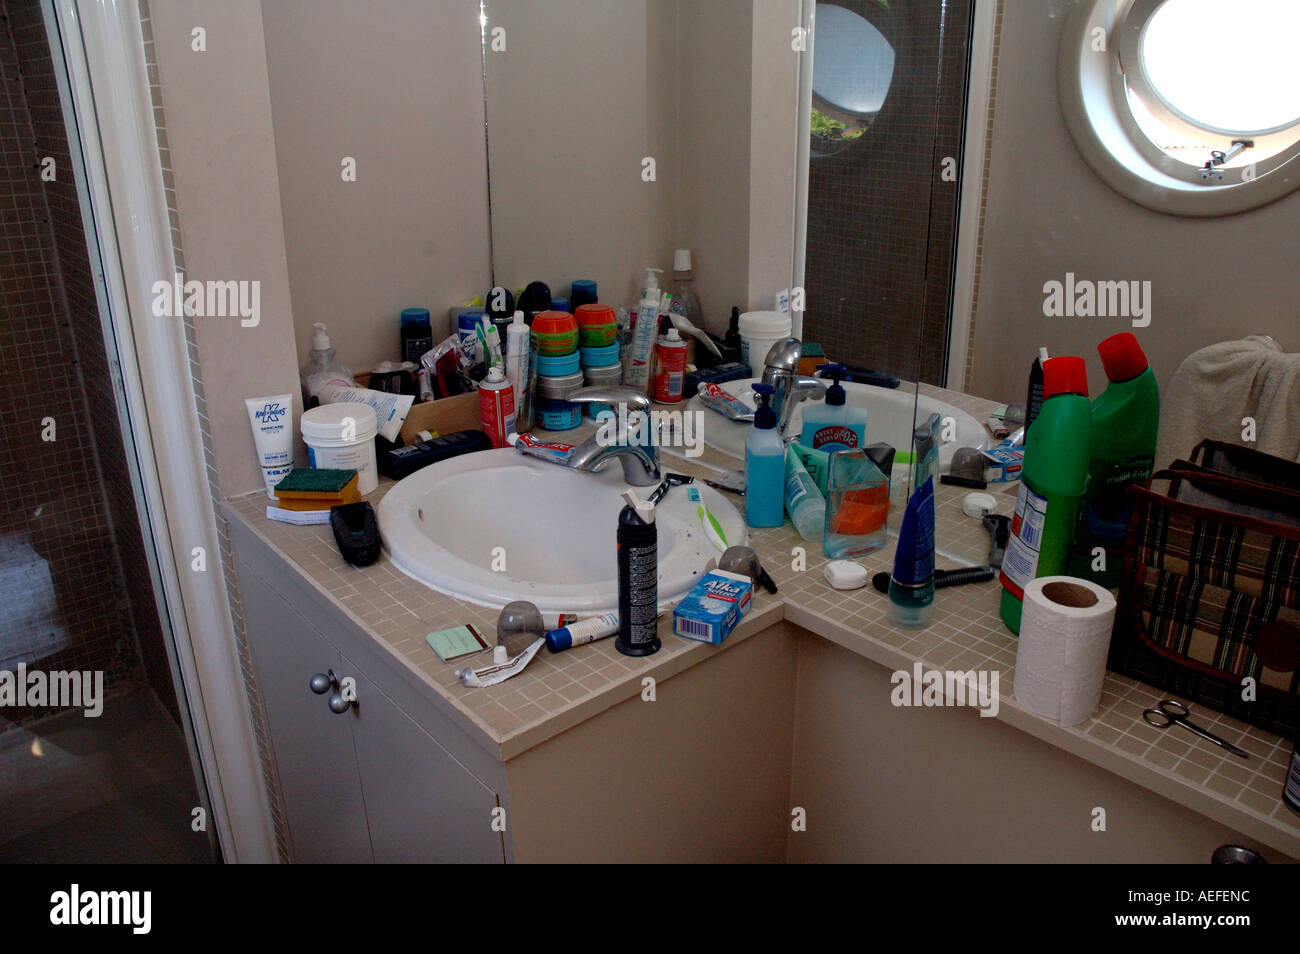 Messy Bathroom Belonging To Teenage Boy